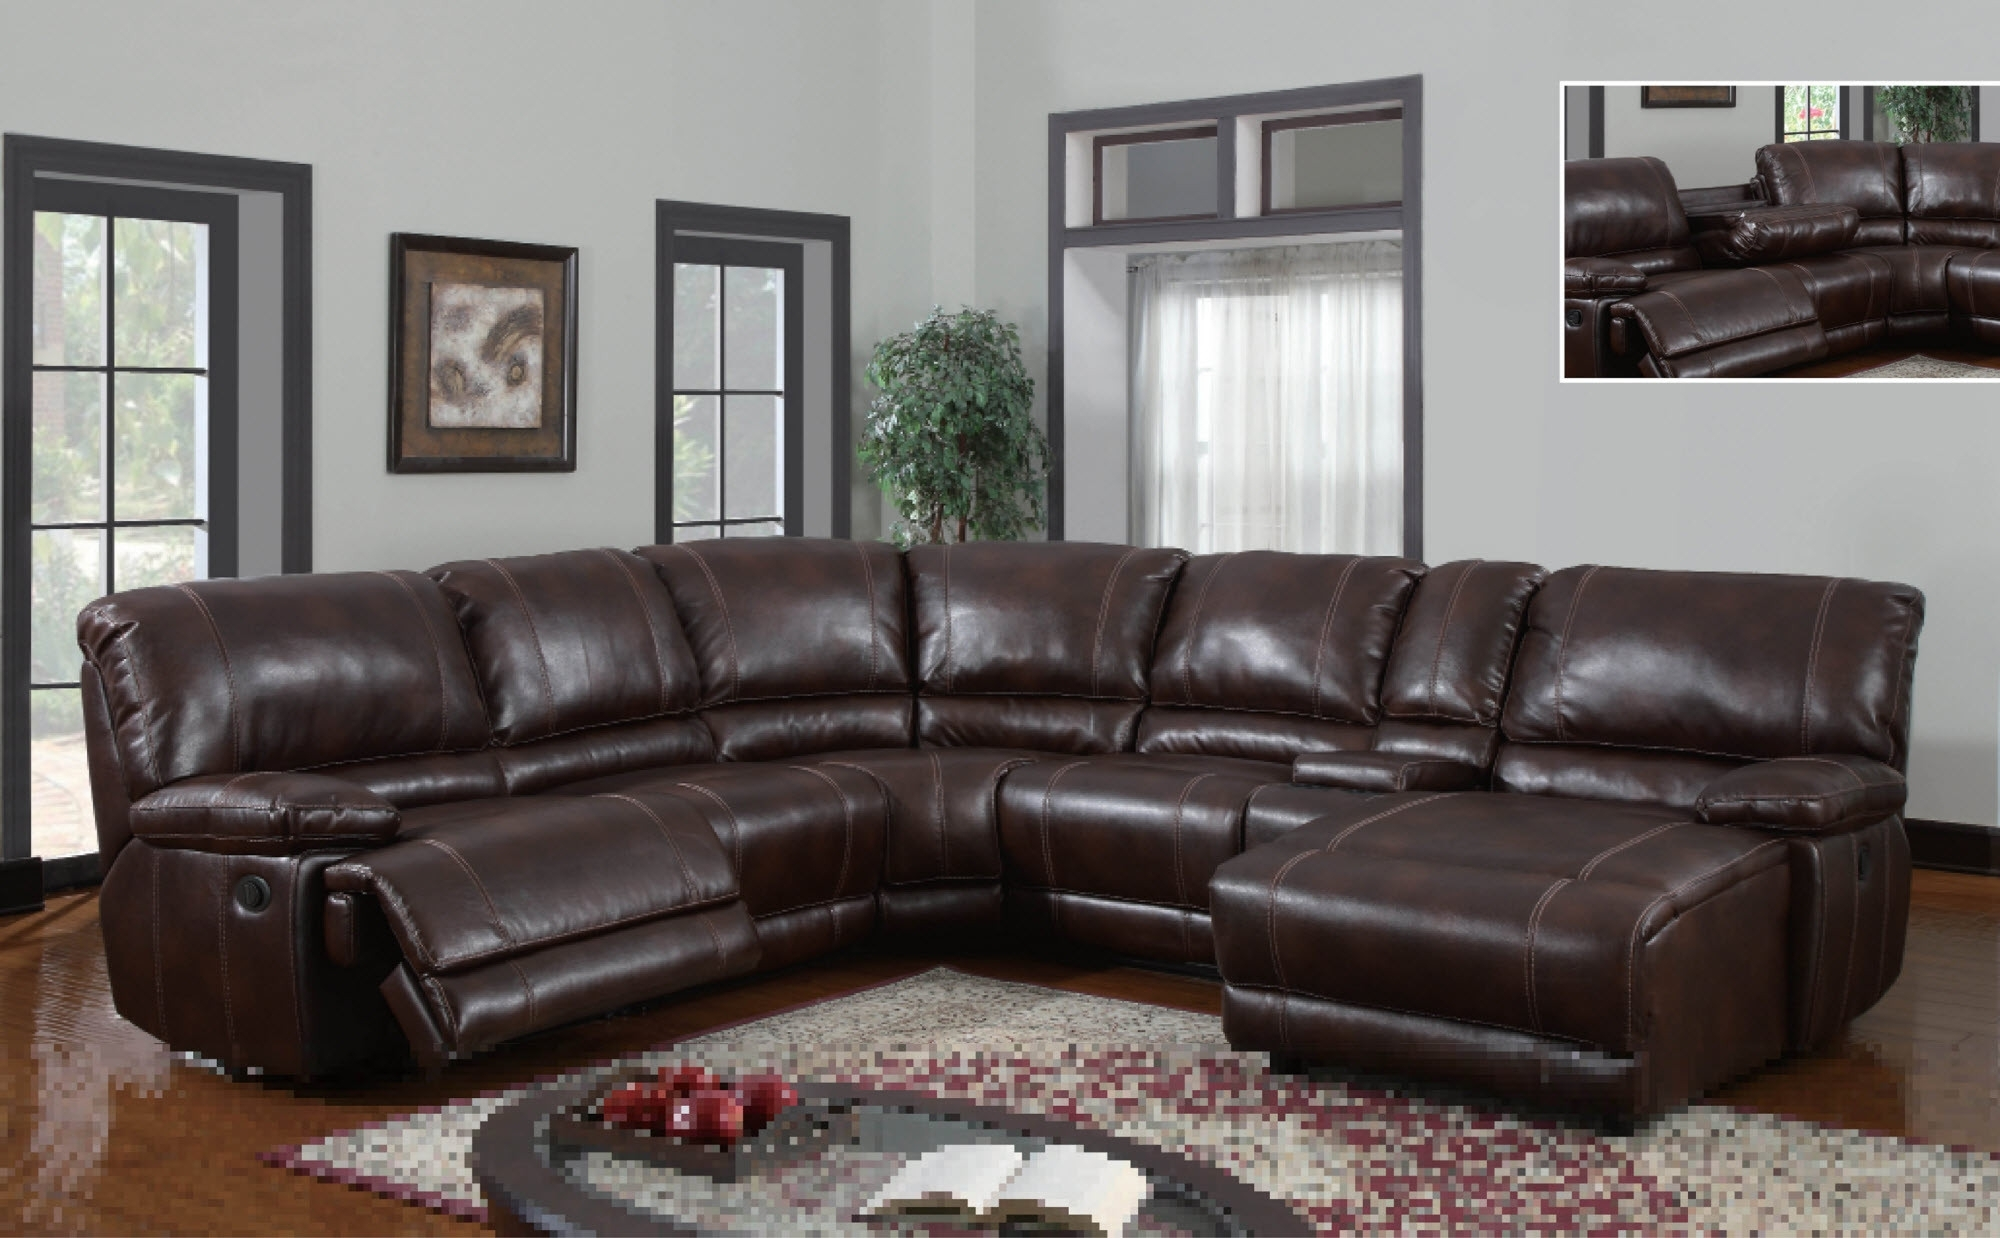 Conns Furniture El Paso Tx Luxury Living Room Cheap Sectional Sofas Regarding El Paso Tx Sectional Sofas (Image 3 of 10)